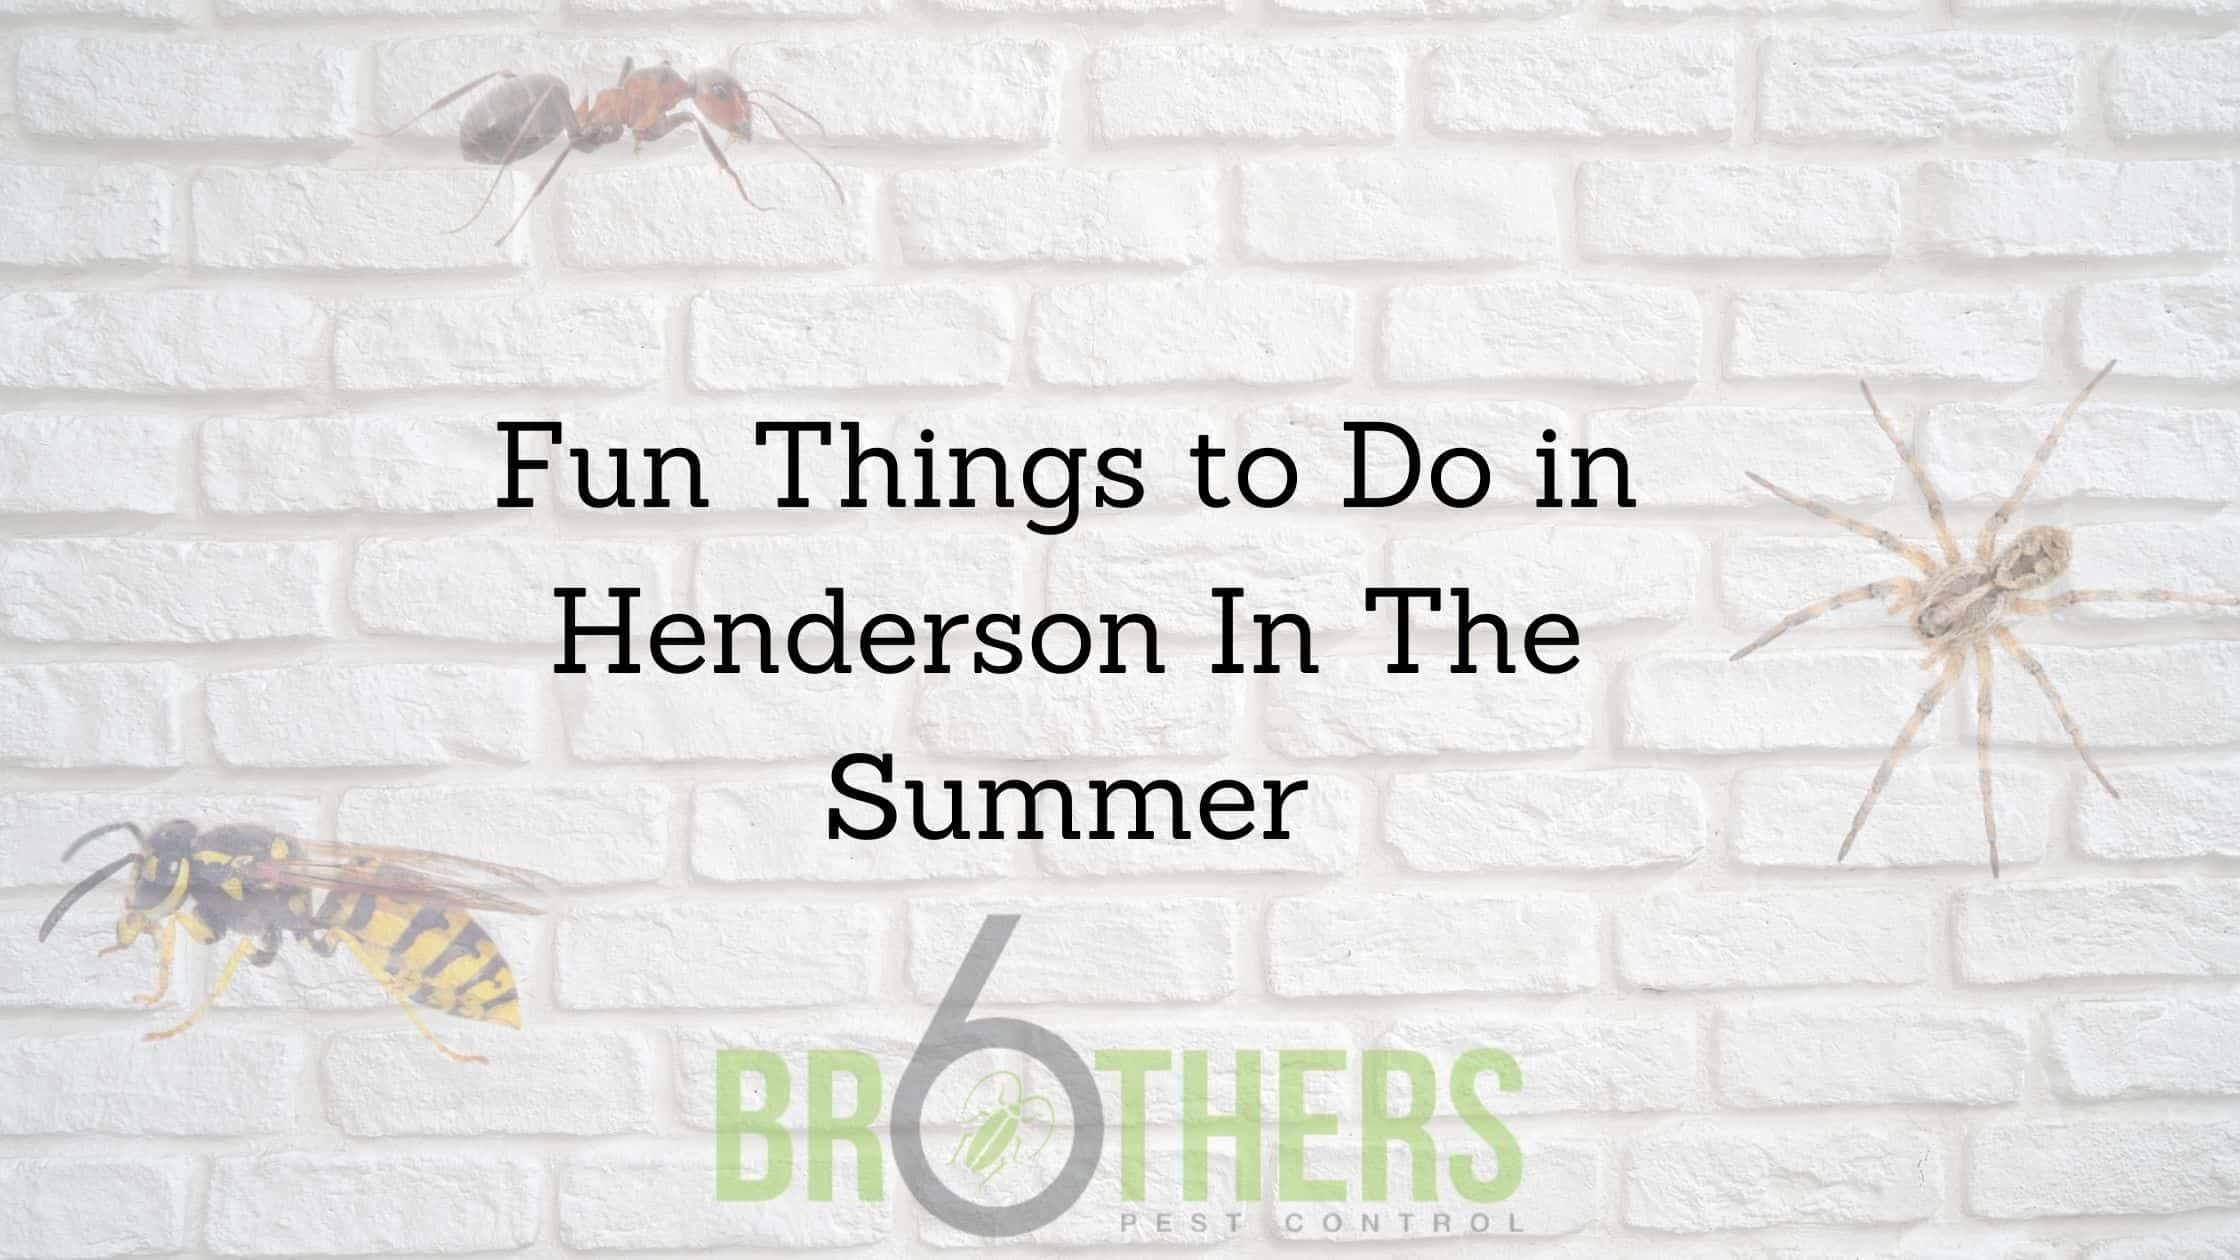 Fun Things to Do in Henderson In The Summer